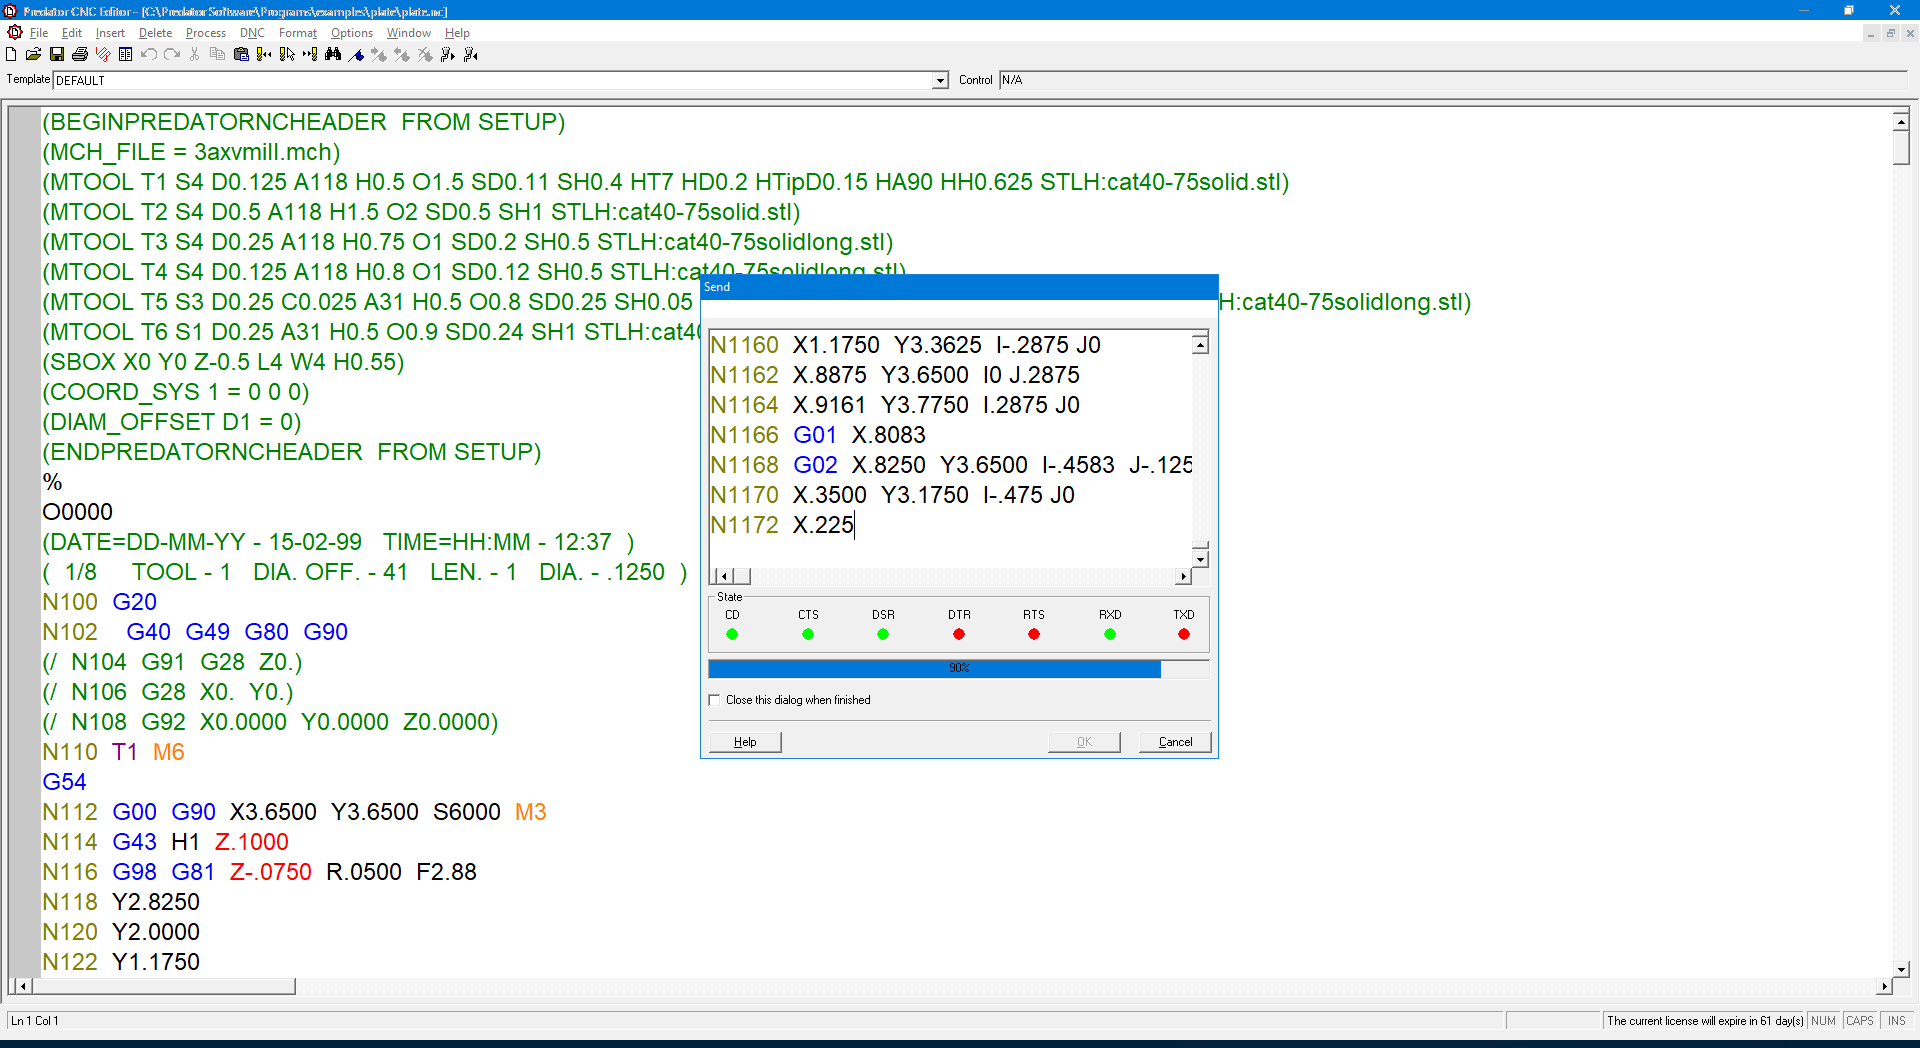 Predator CNC Editor with RS232 communications